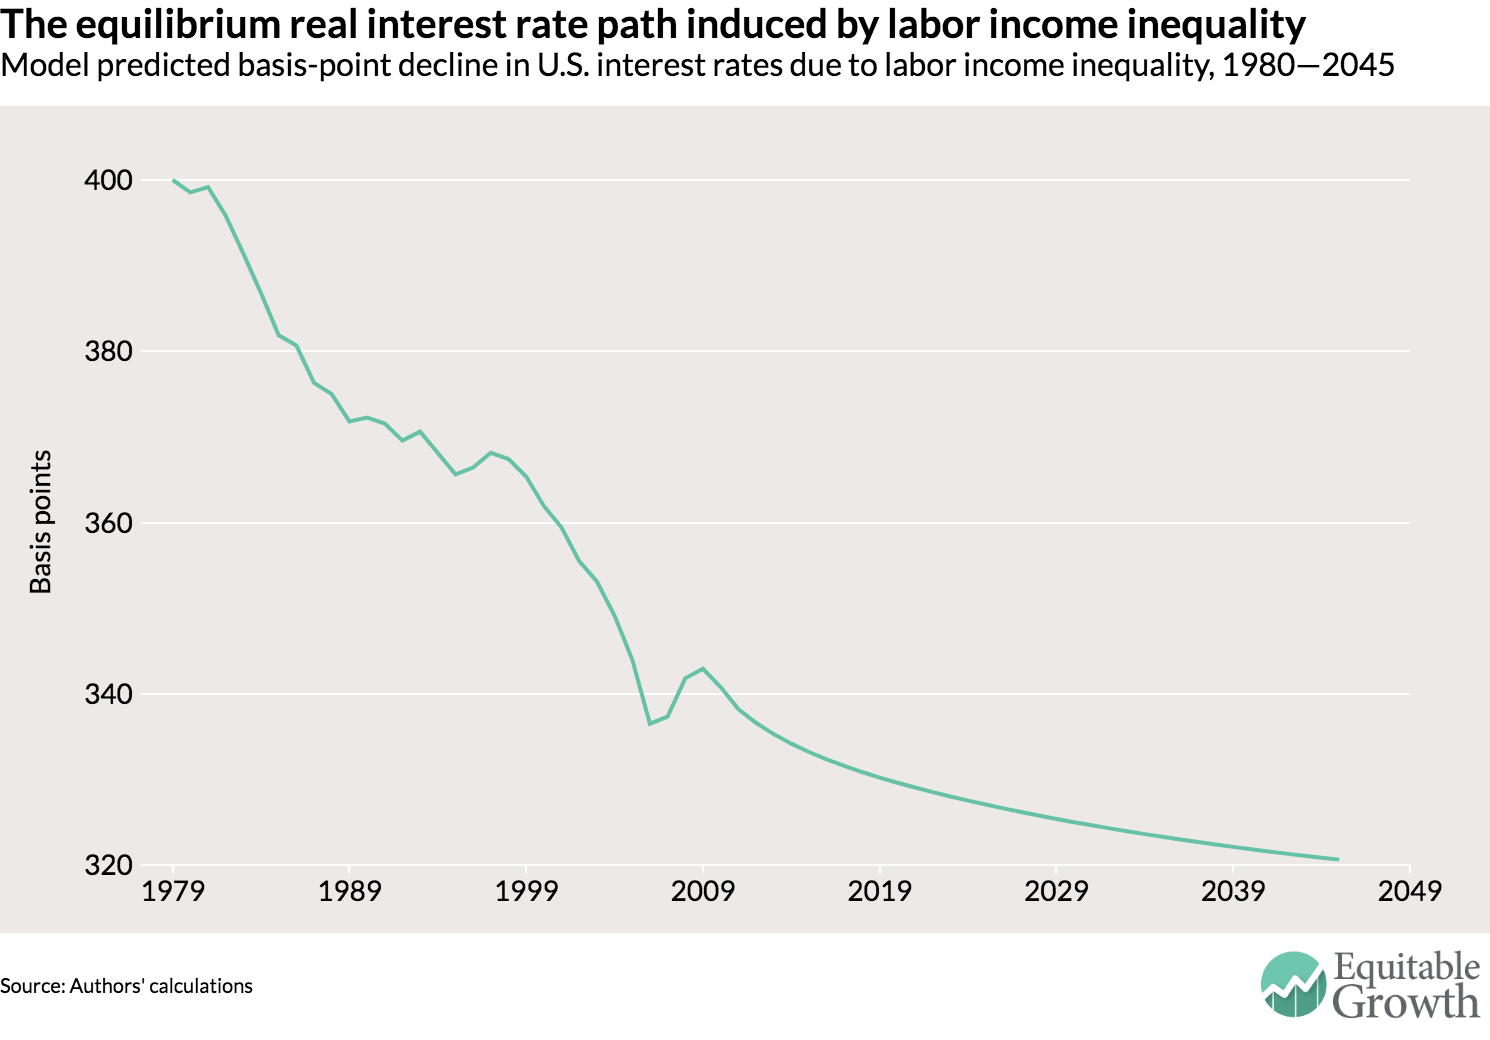 hight resolution of our model suggests a decline of 80 basis points in that equilibrium rate due to rising income inequality about one fifth of the 4 percentage point decline